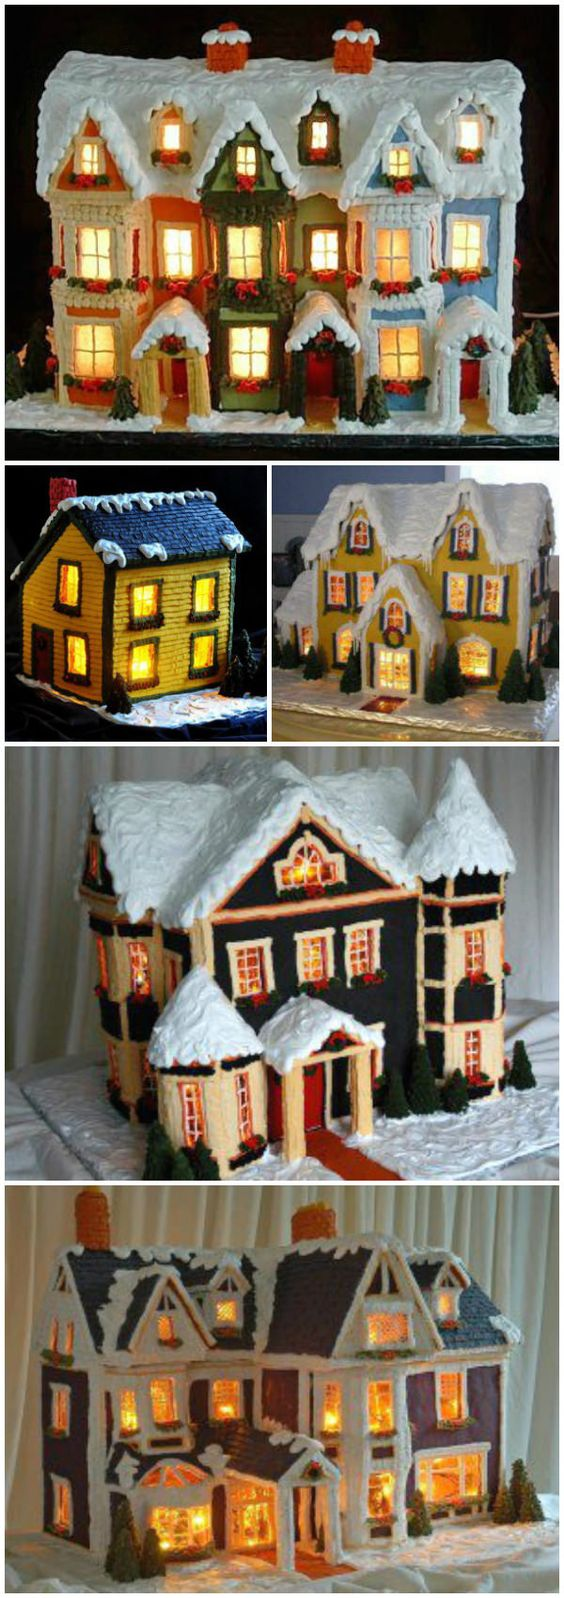 Learn how to make beautiful lighted gingerbread houses. Let your imagination take you from the most simple to the most complex. Video slideshows included.